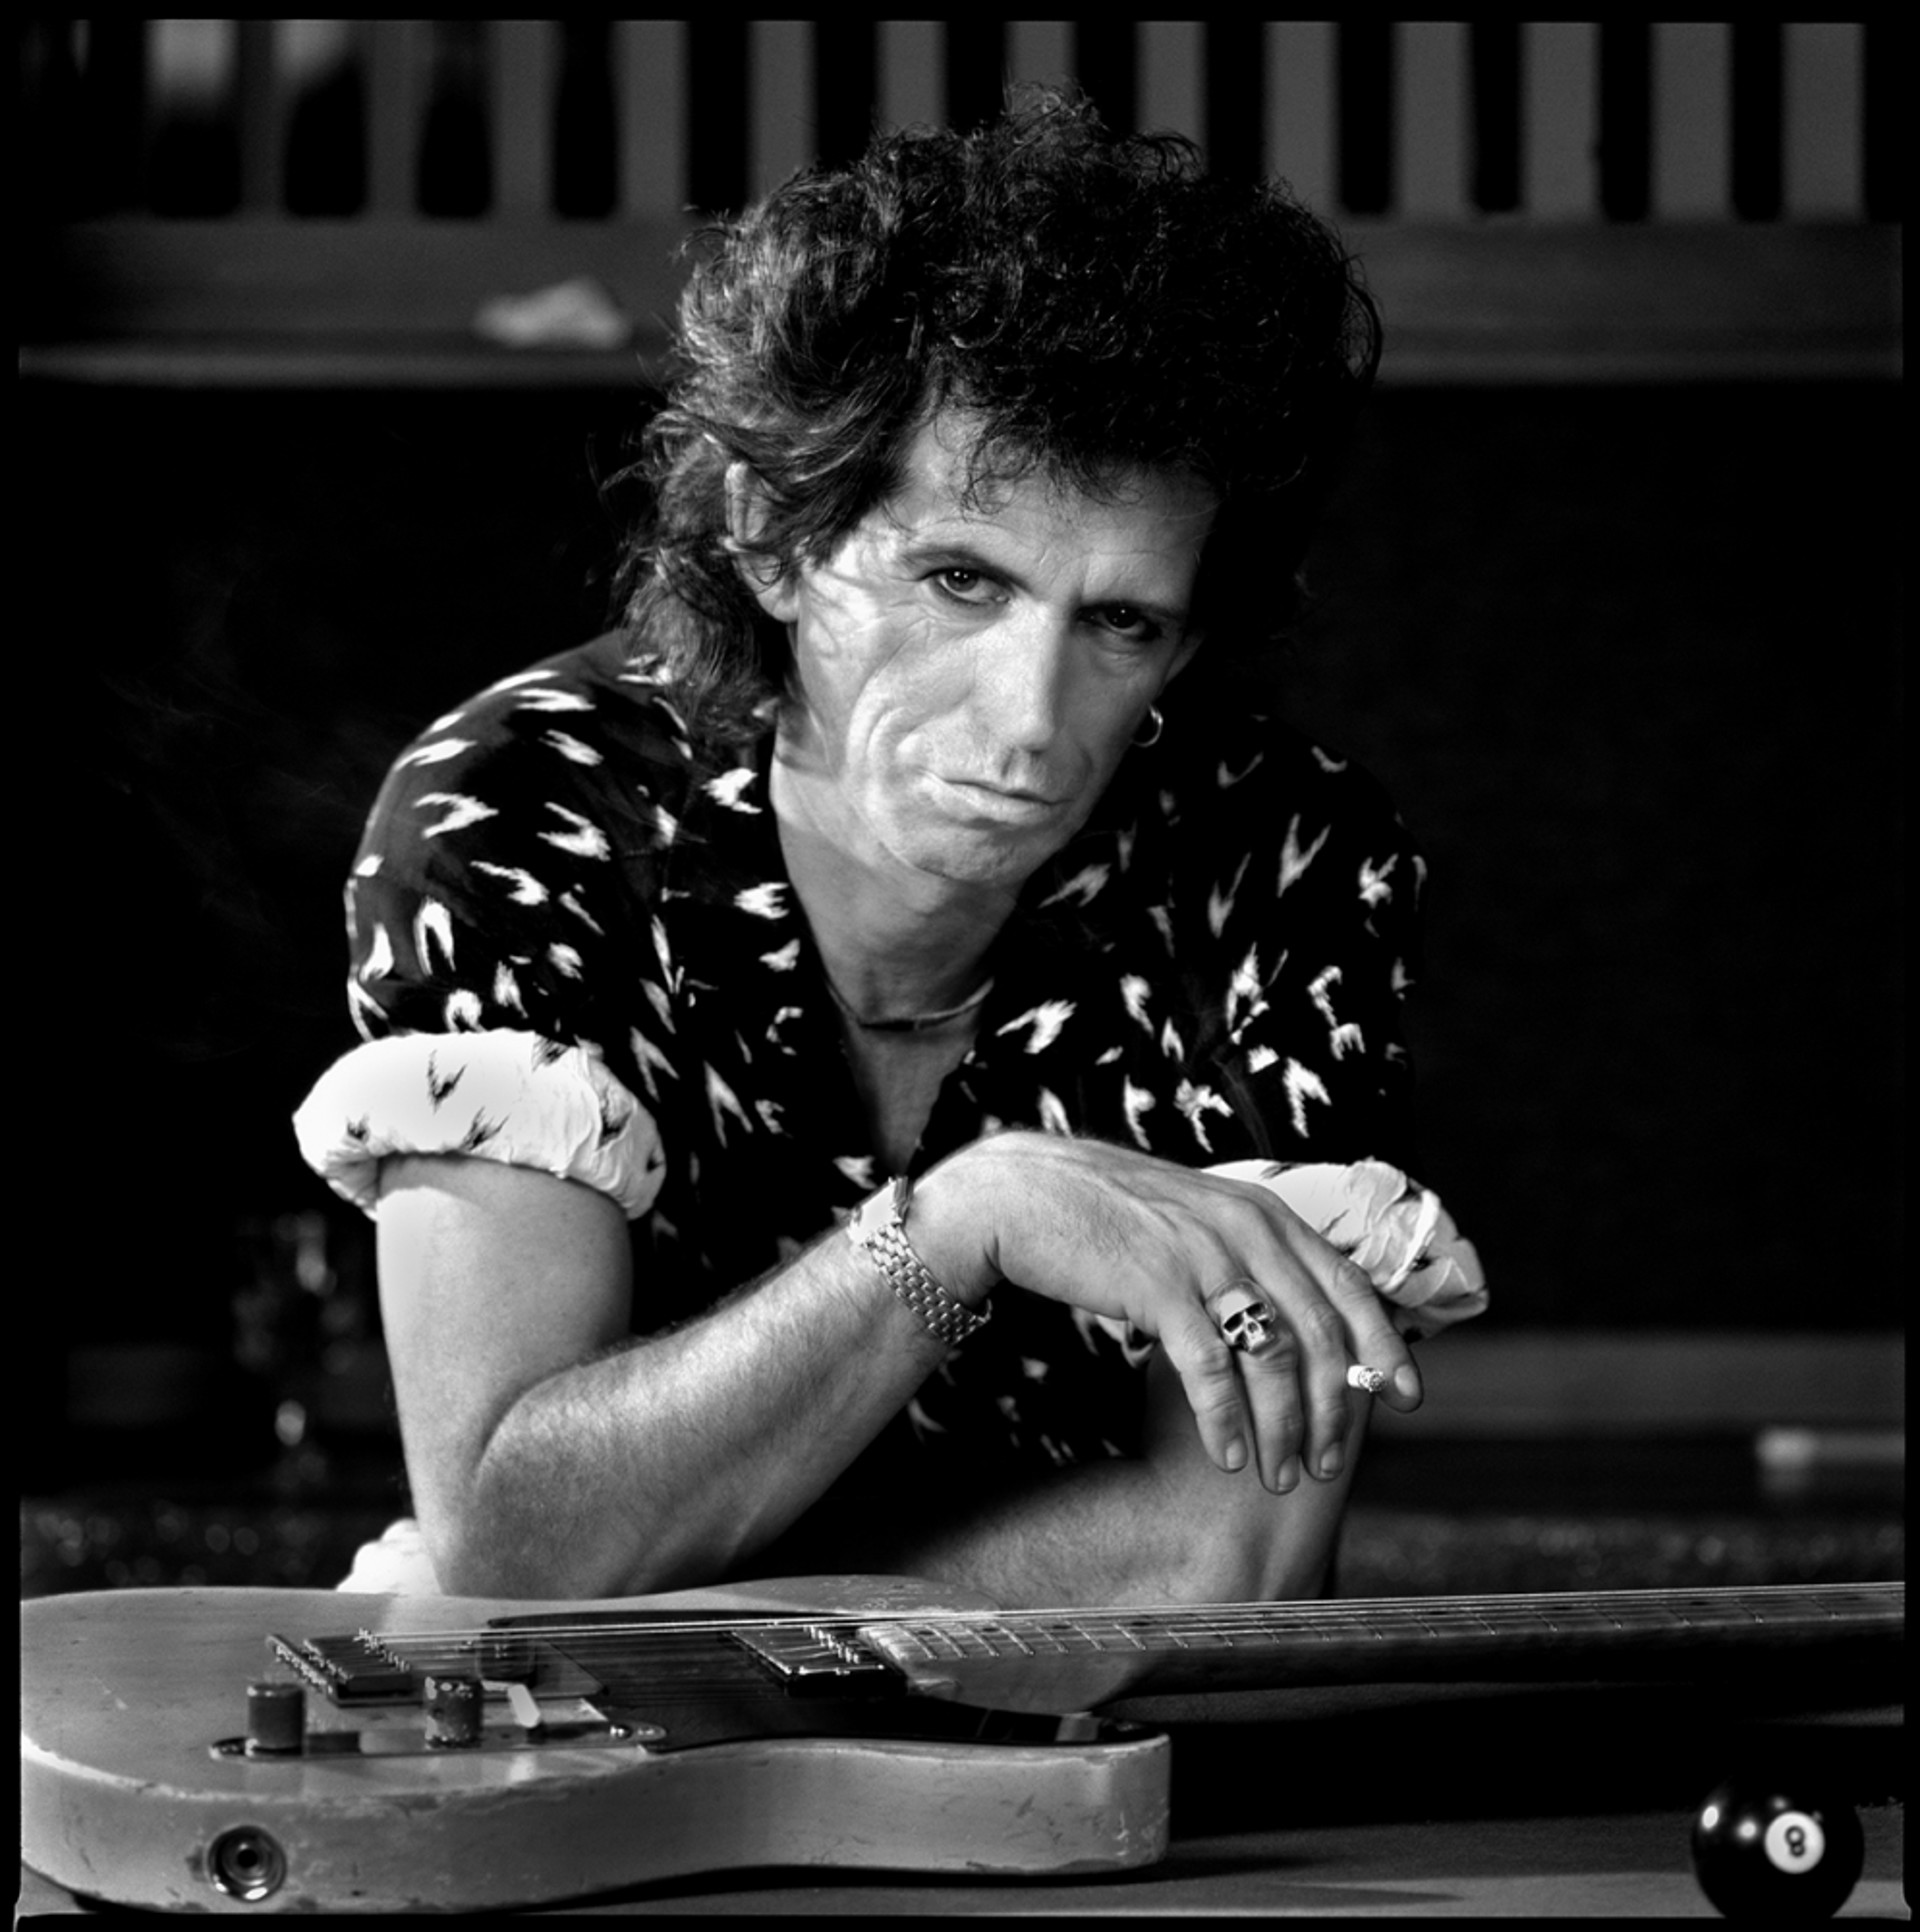 88146 Keith Richards Pool Table BW by Timothy White